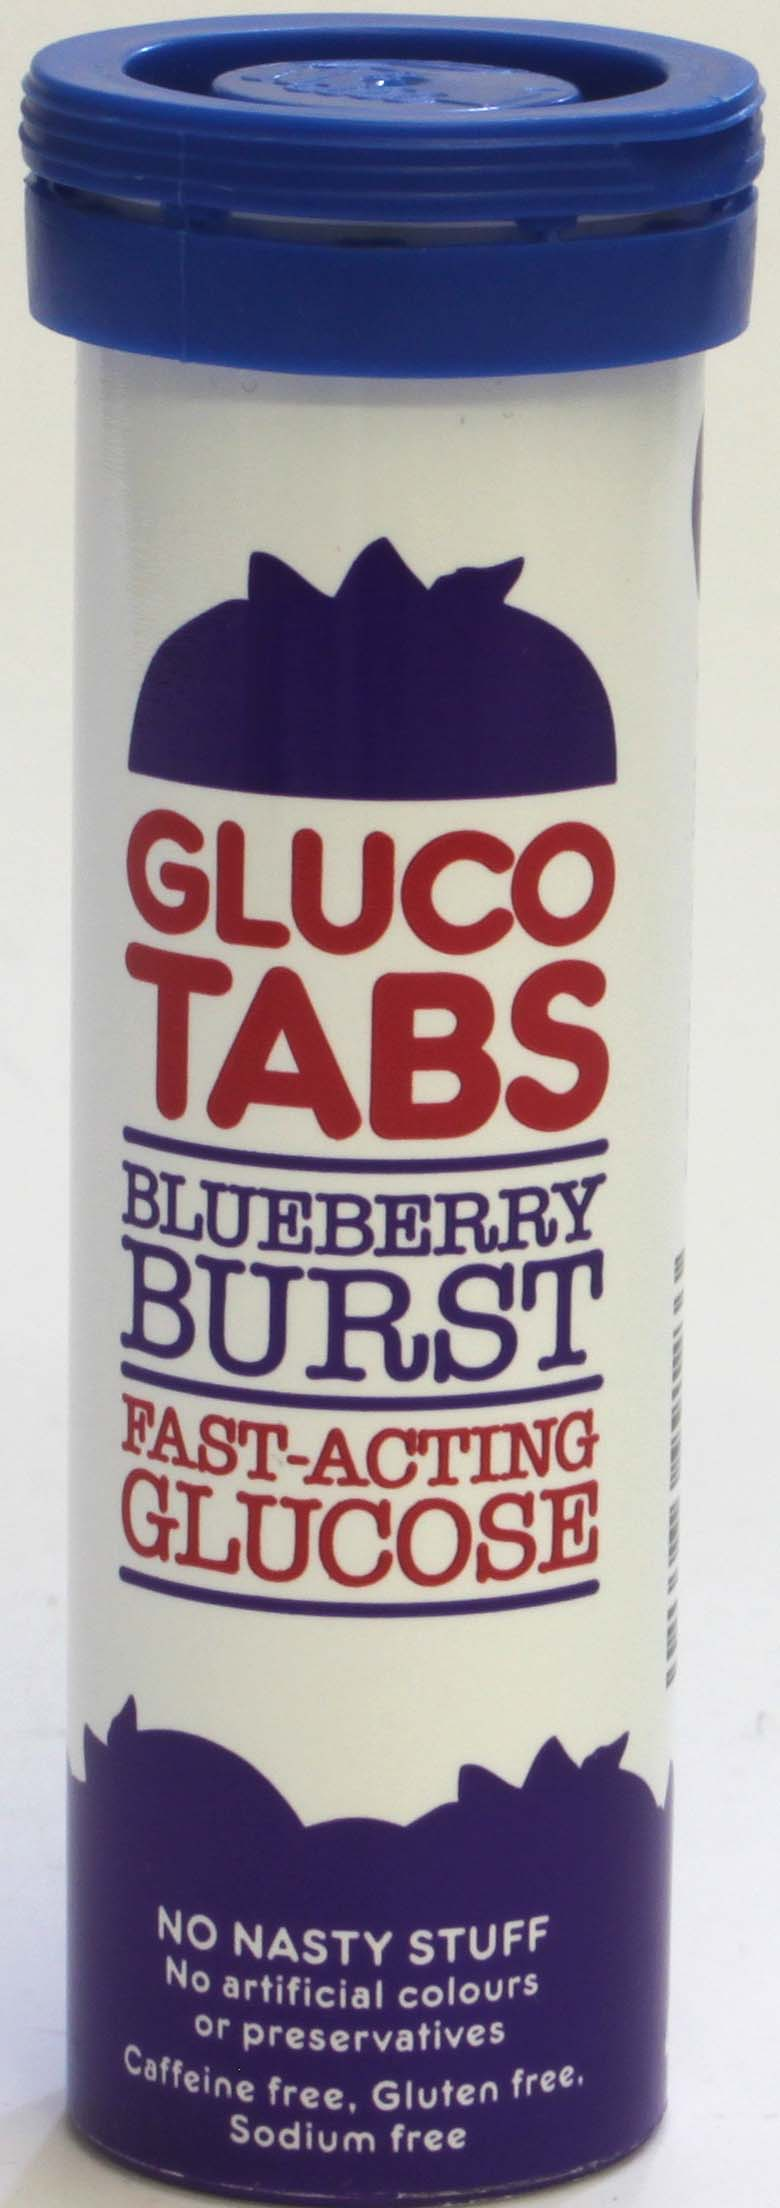 Gluco Tabs Blueberry Glucose Tablets 10